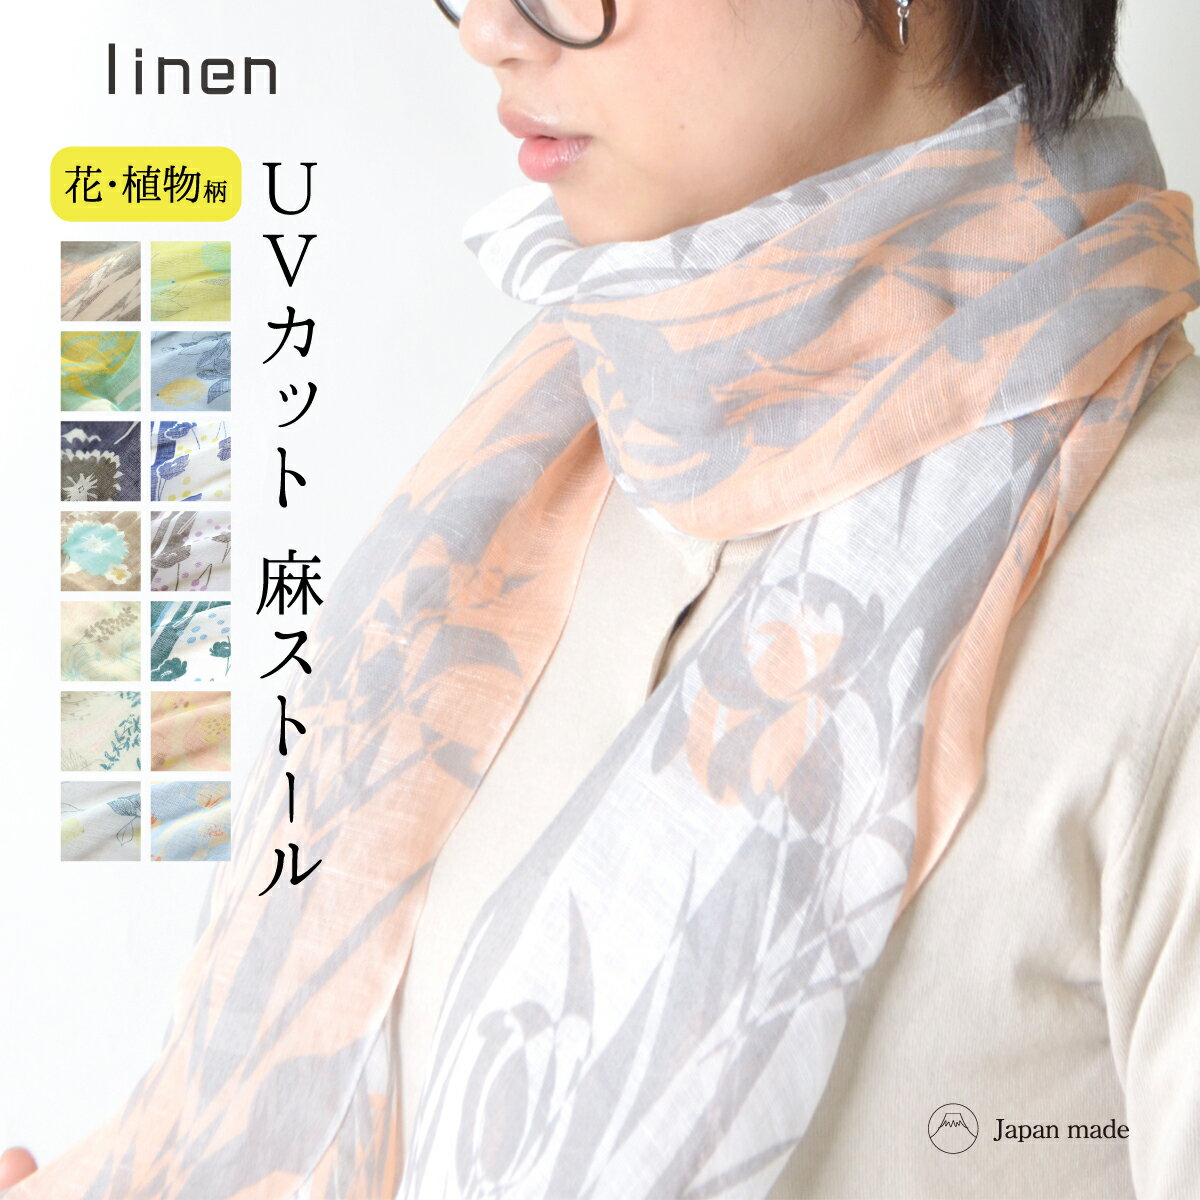 【linen】 麻ストール 花・植物柄 (4165)UVカット リネン フランダース地方 花柄 植物柄 母の日 ギフト プレゼント 麻 綿 リネン コットン 日本製 伝統 技術 職人